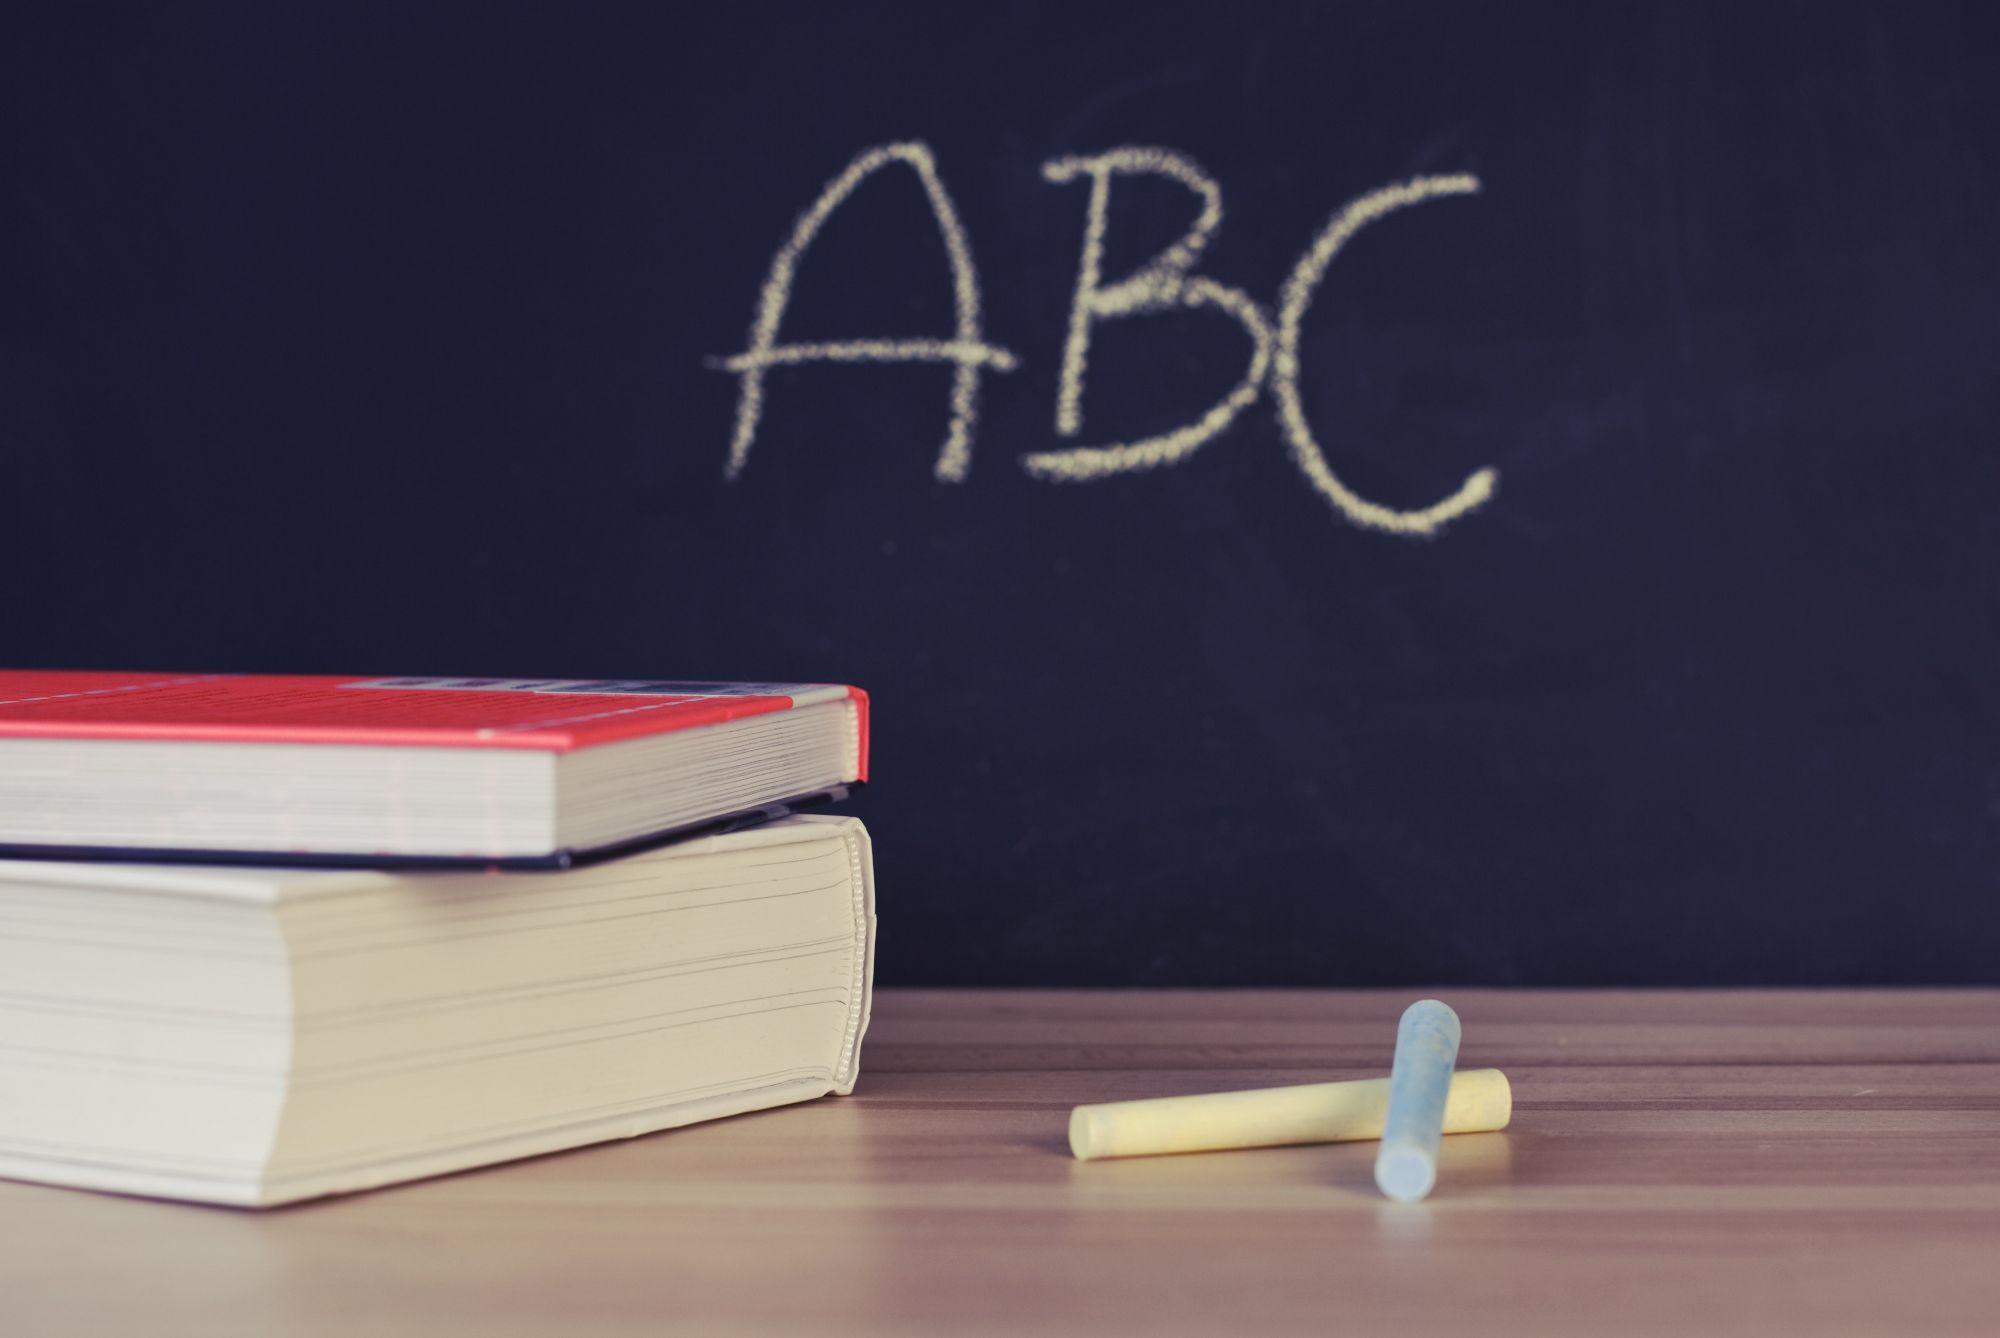 Image of ABC on a blackboard